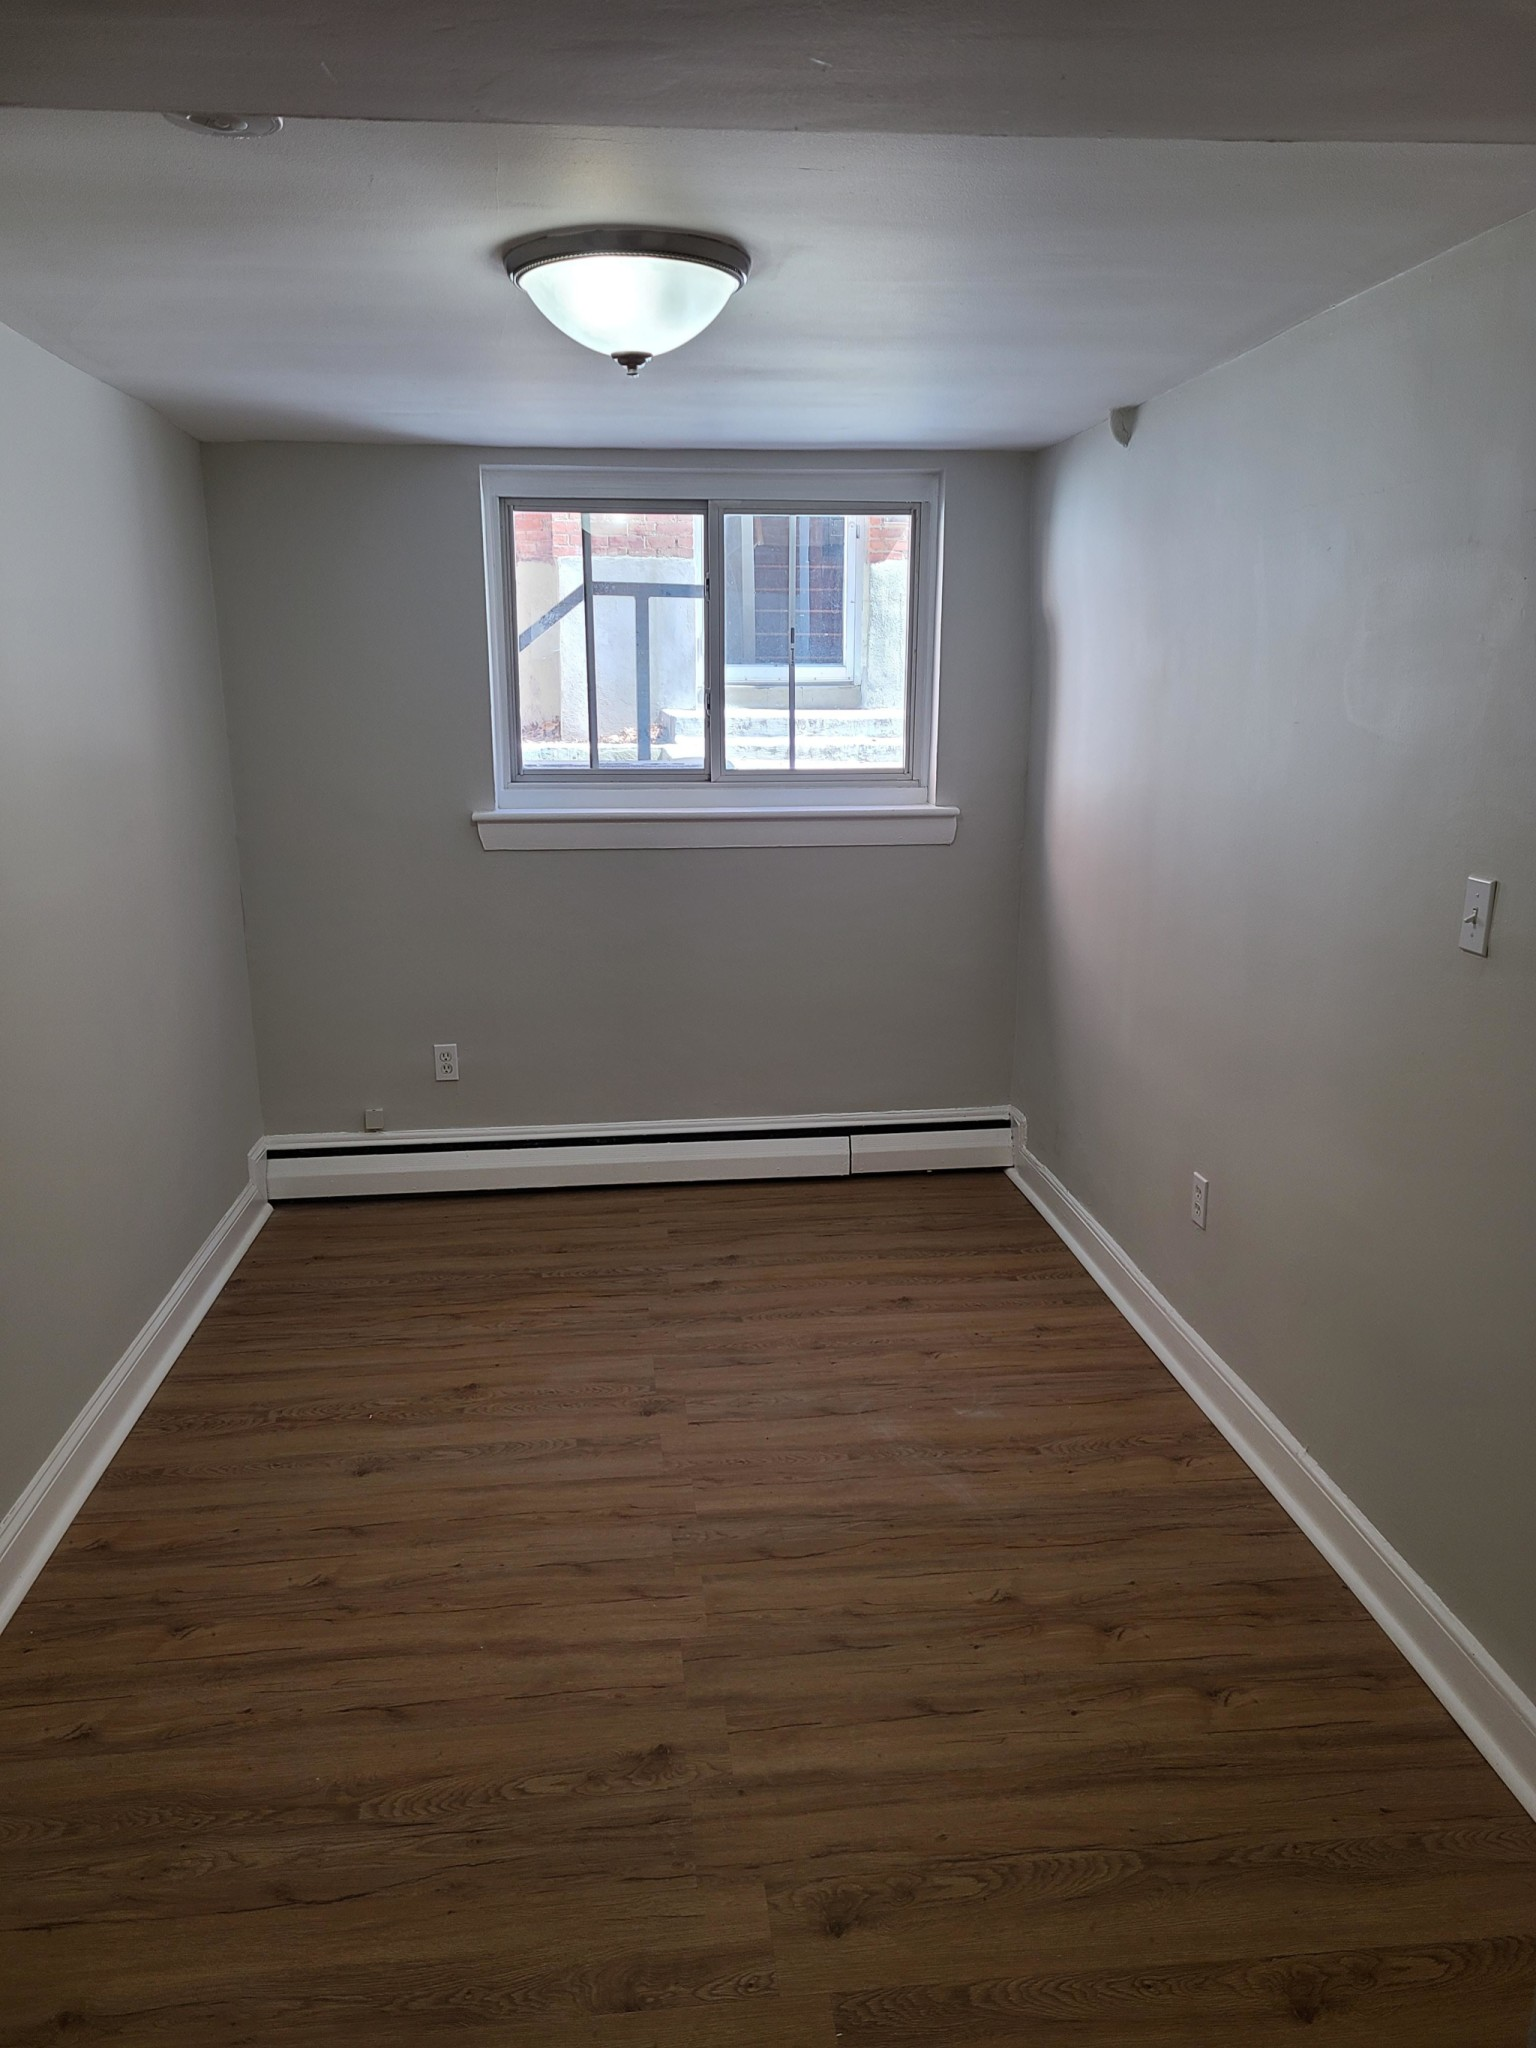 Photos of apartment on Chiswick Rd.,Boston MA 02135